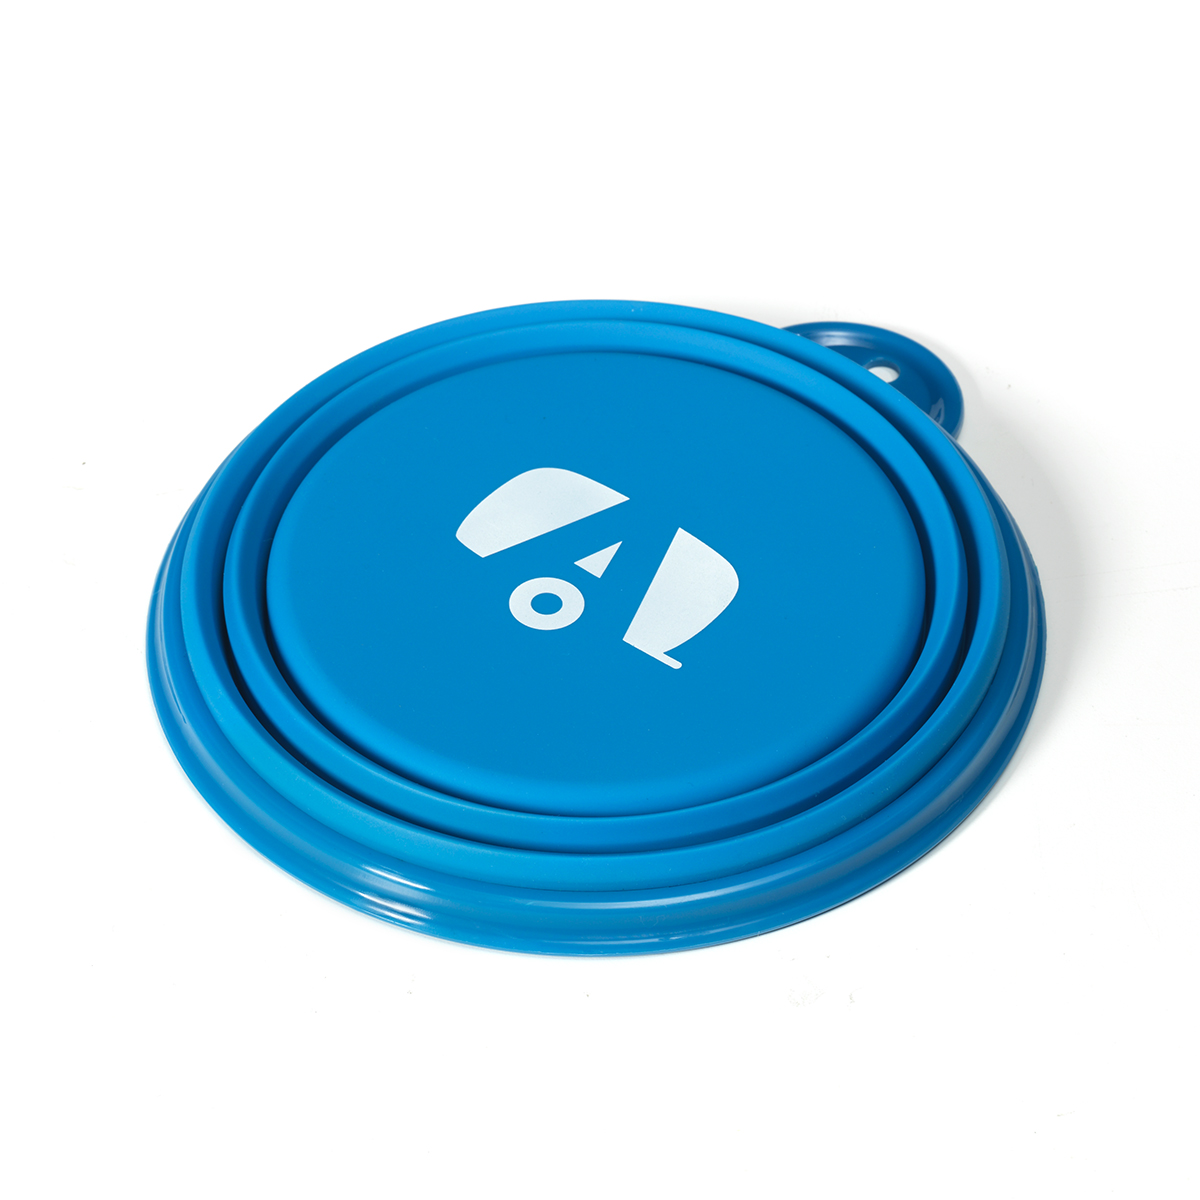 AIRMKT eCom Collapsable Cup Closed_88513 WEB